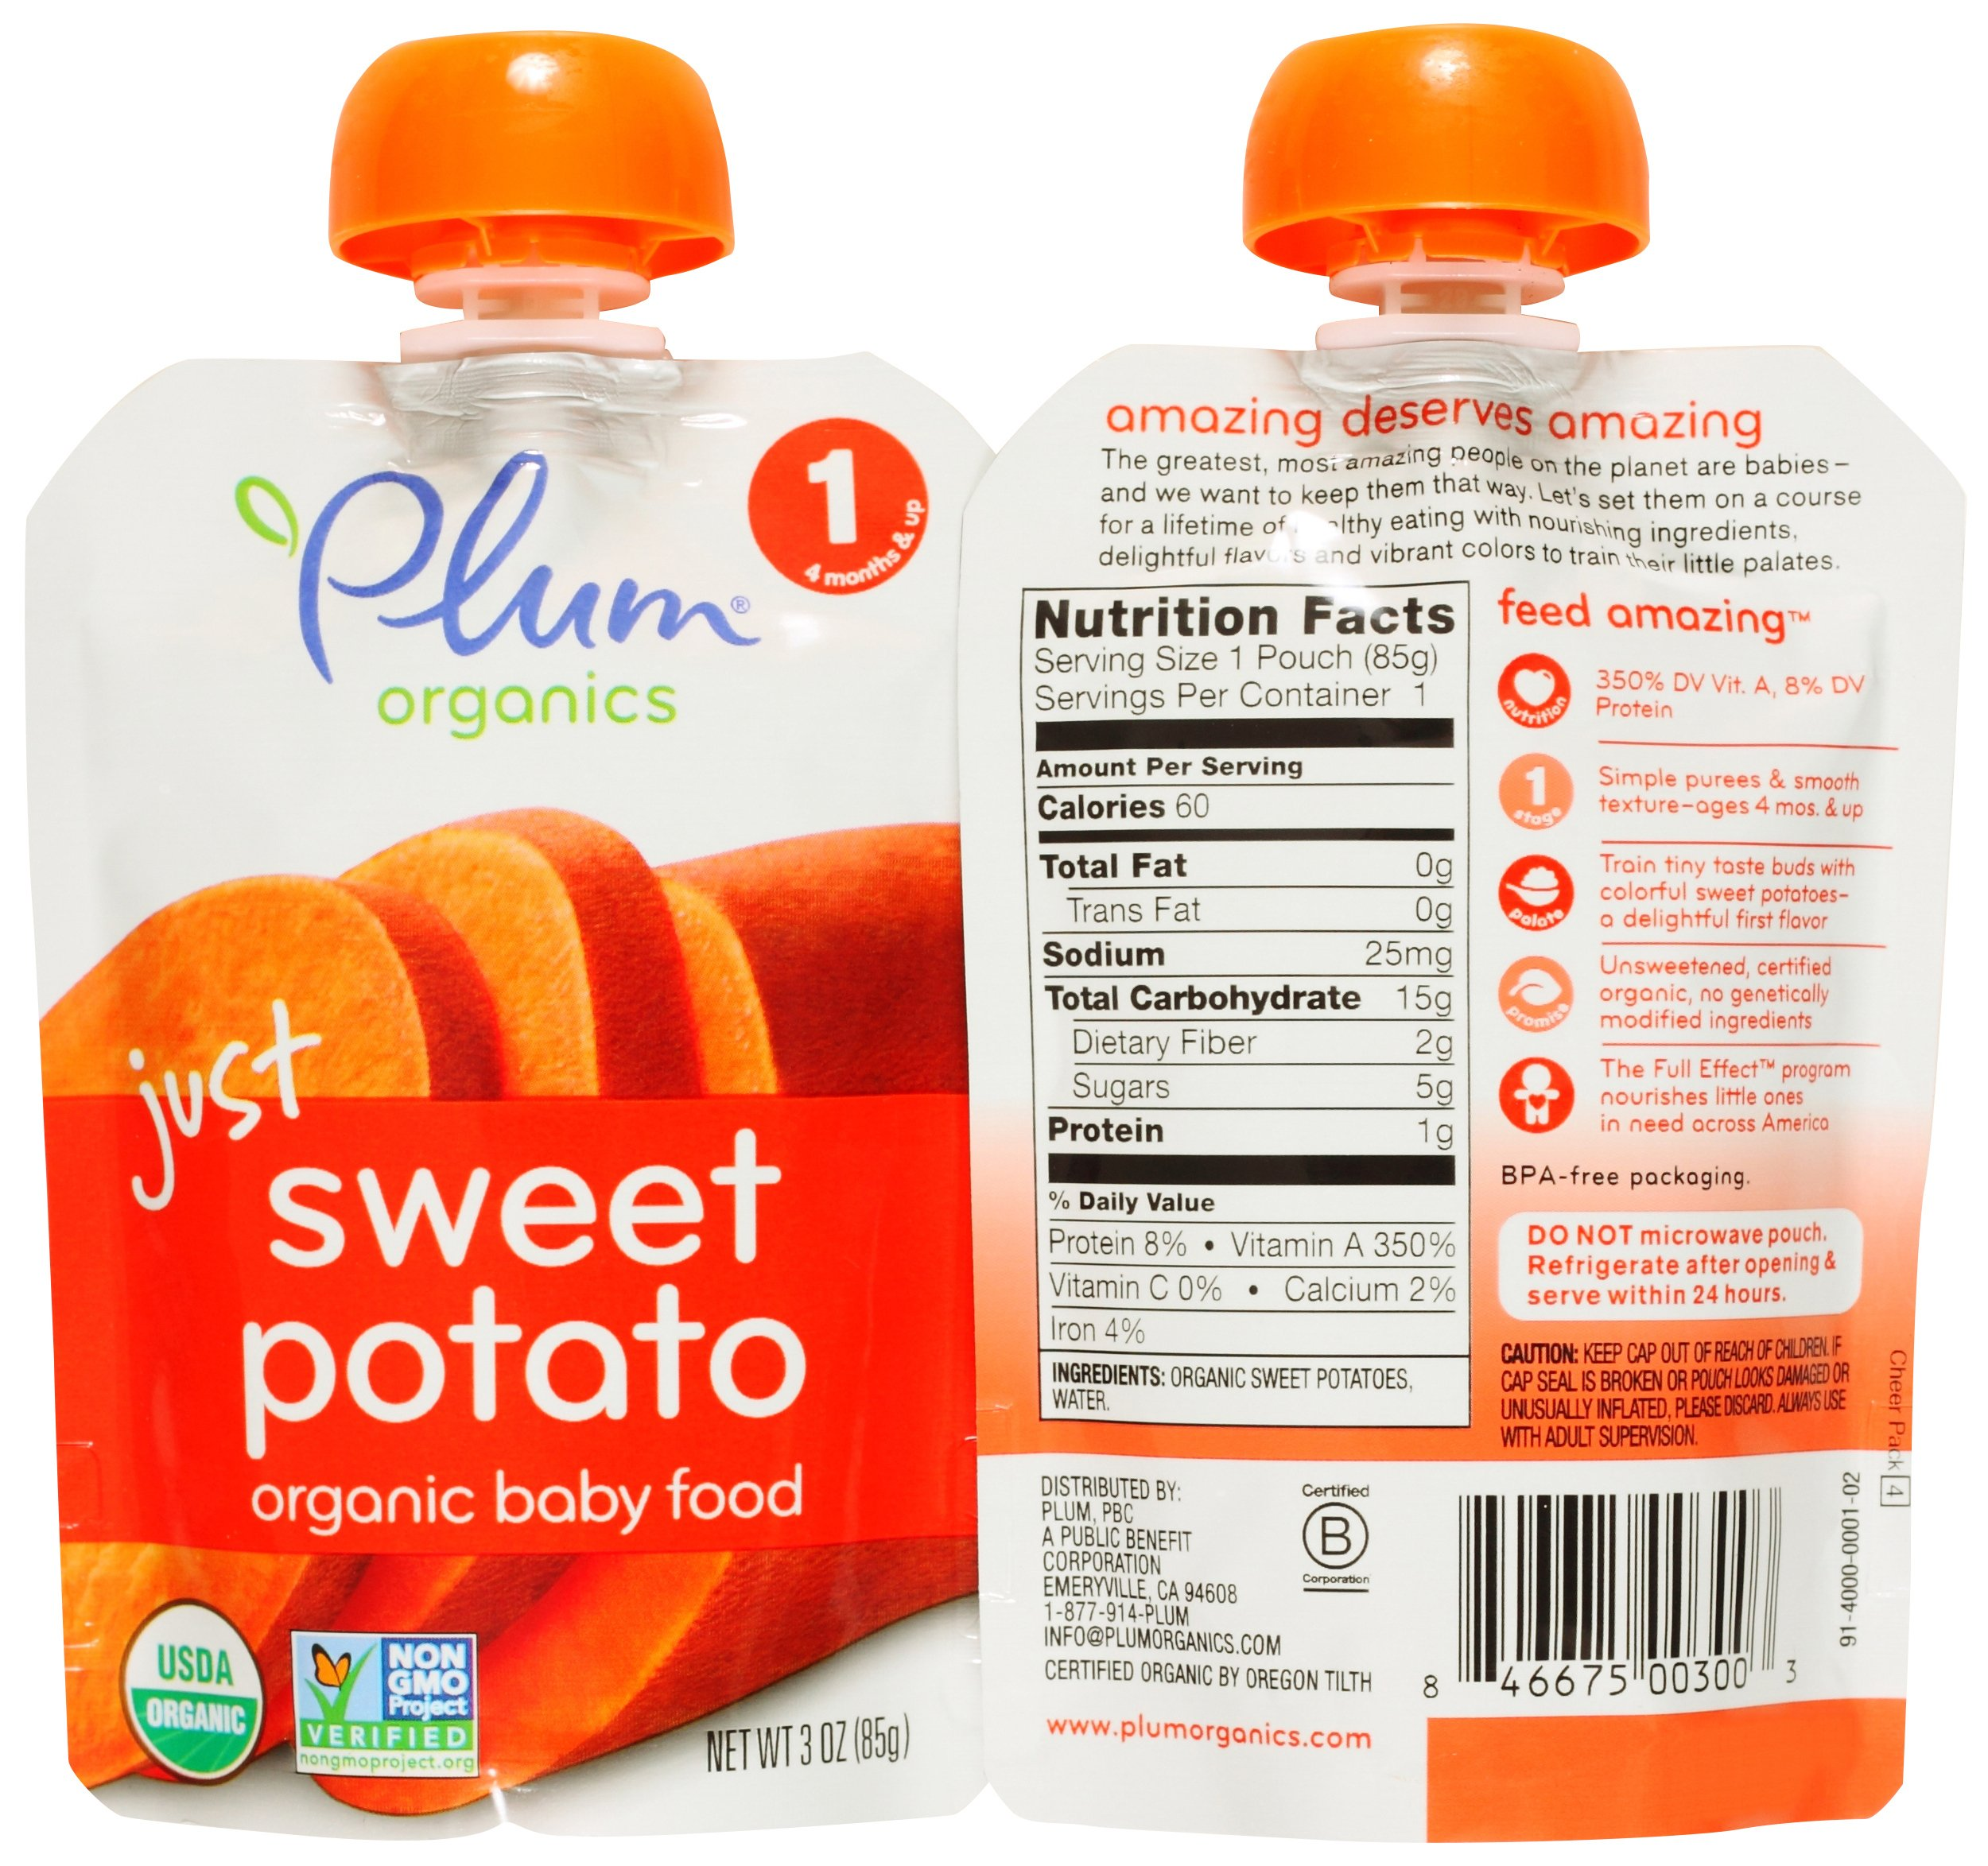 Plum Organics Stage 1 Just Fruit & Veggies Variety Pouch Bundle: (2) Just Prunes 3.5oz, (2) Just Mangos 3.5oz, (2) Just Sweet Potato 3oz, and (2) Just Peaches 3.5oz (8 Pack Total) by Plum Organics (Image #4)